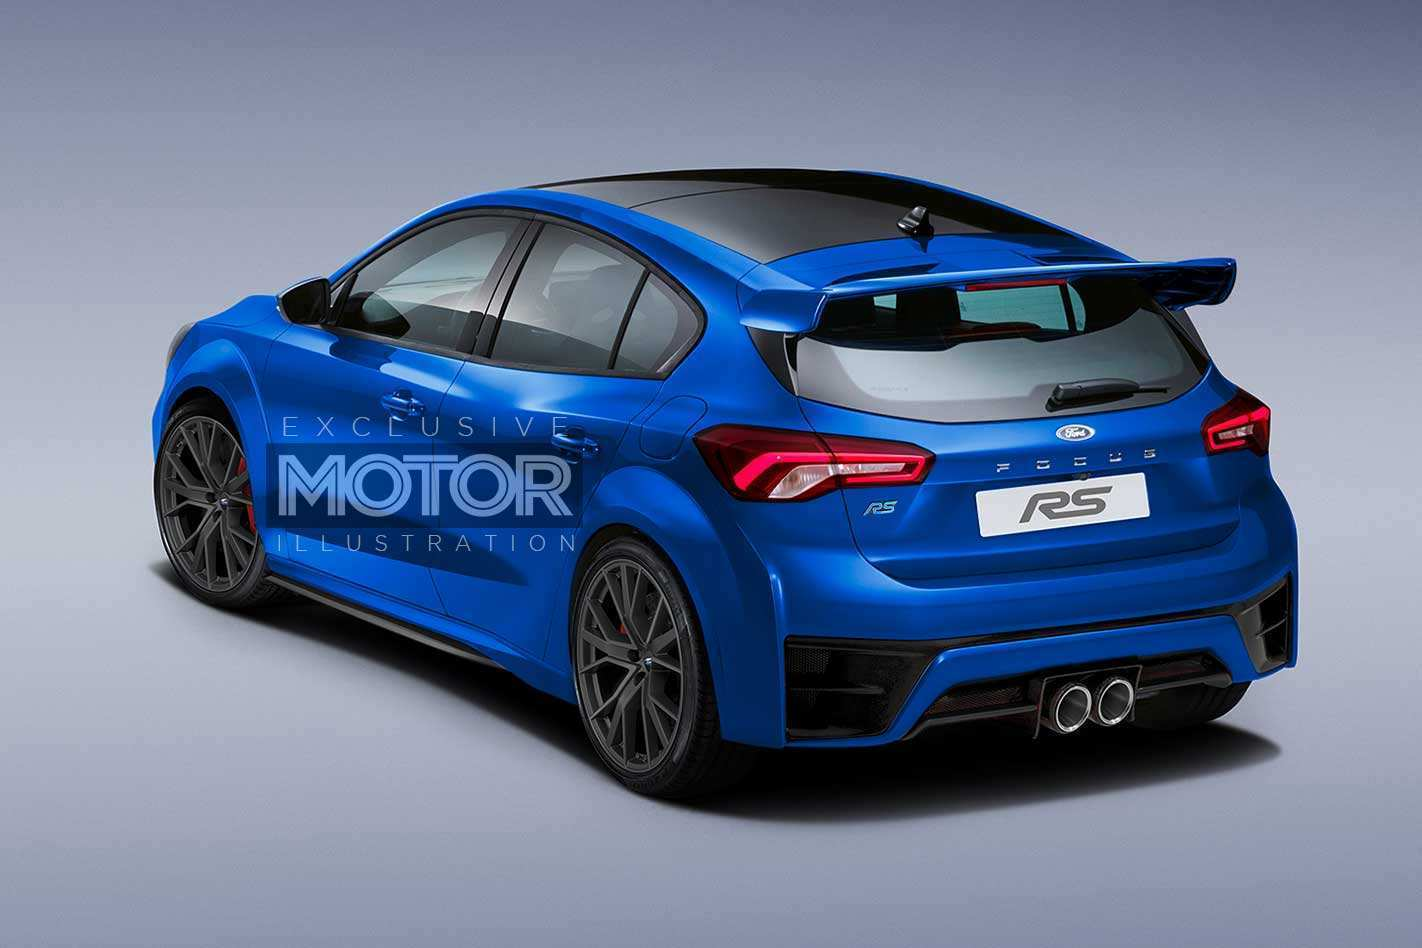 76 The 2020 Ford Focus Rs St Wallpaper